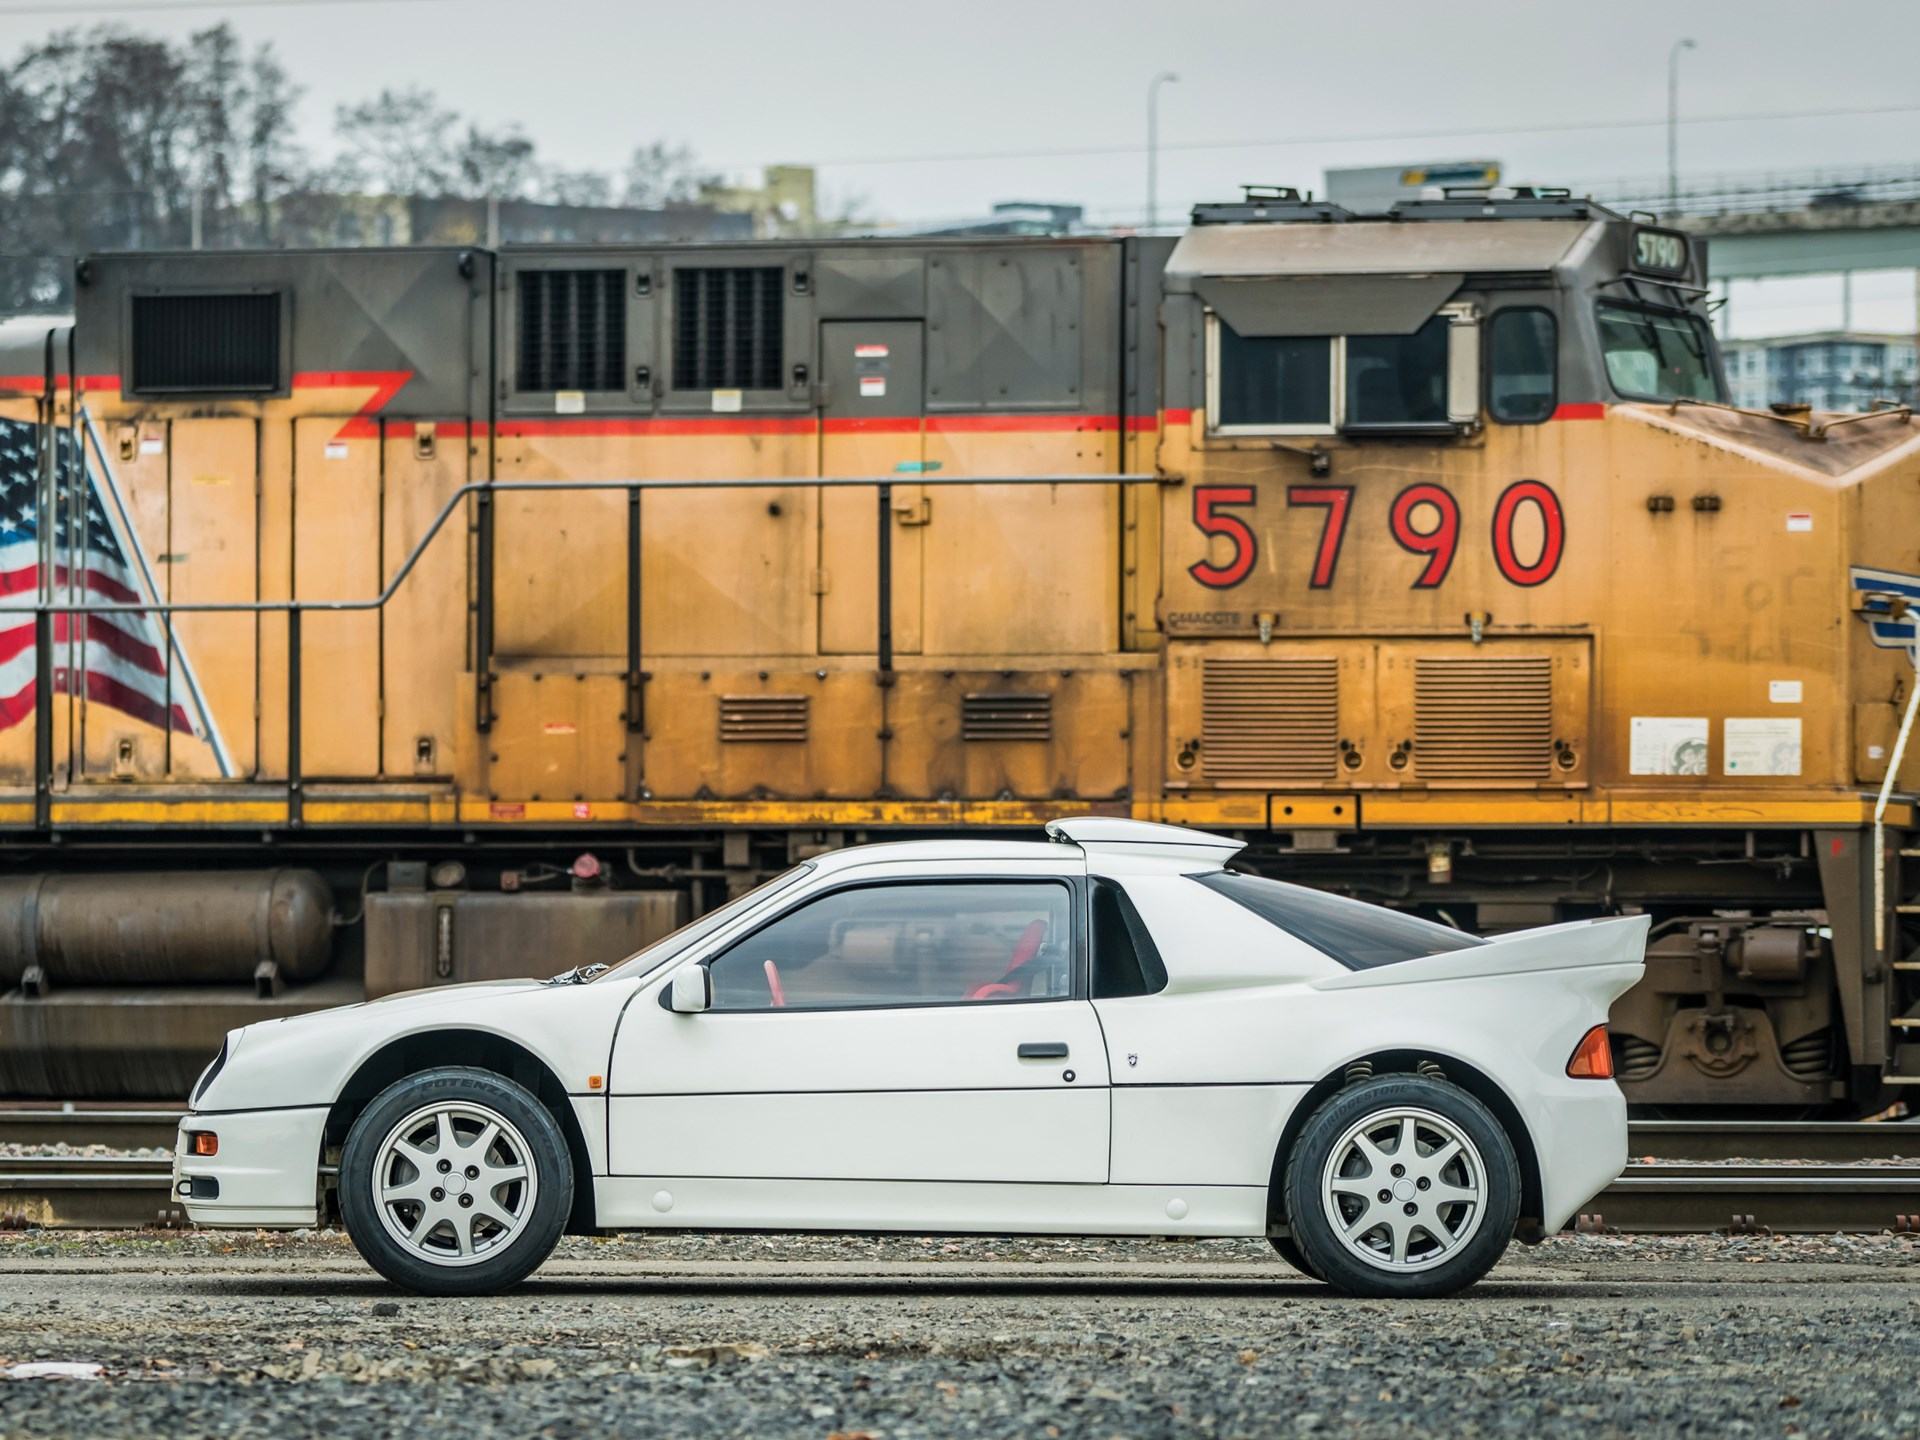 1986 Ford RS200 side view train